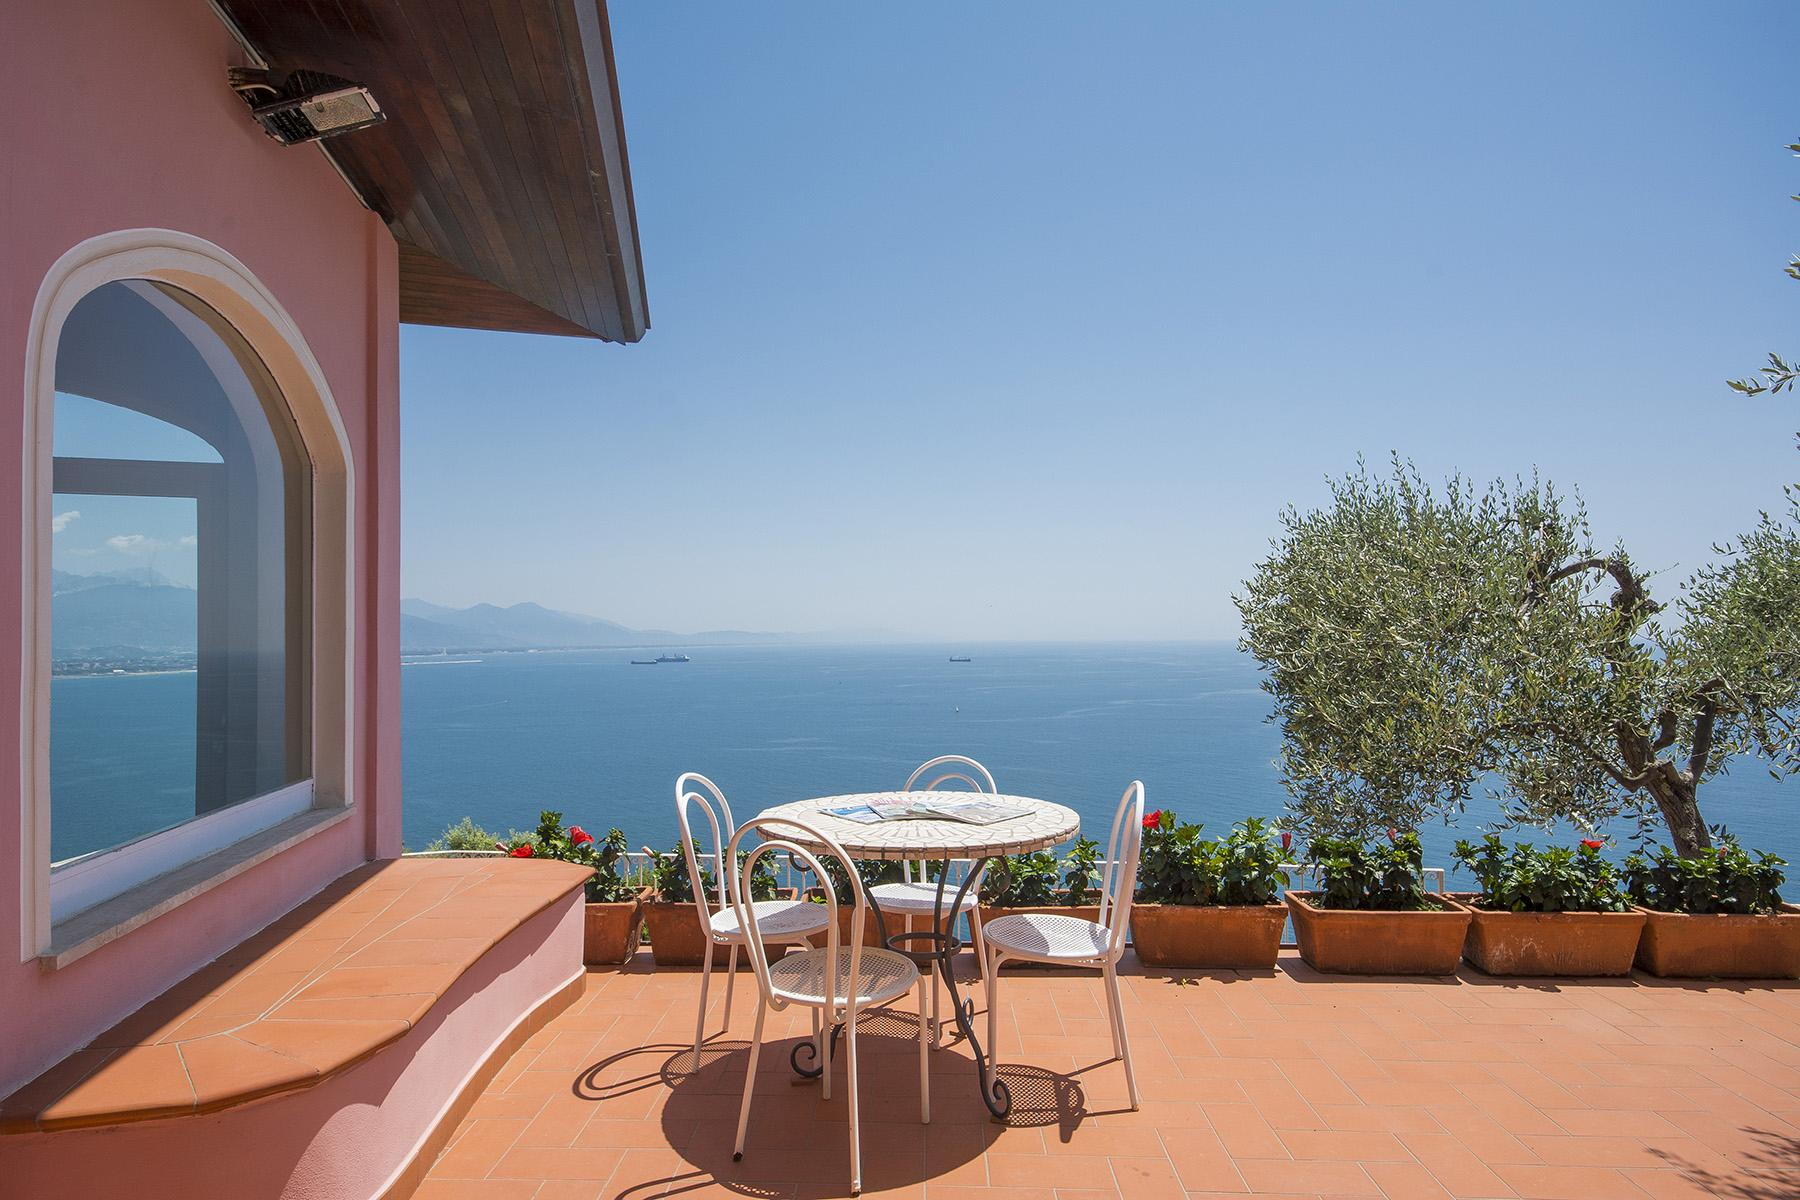 Charming luxury villa with swimming pool overlooking the Ligurian sea - 1